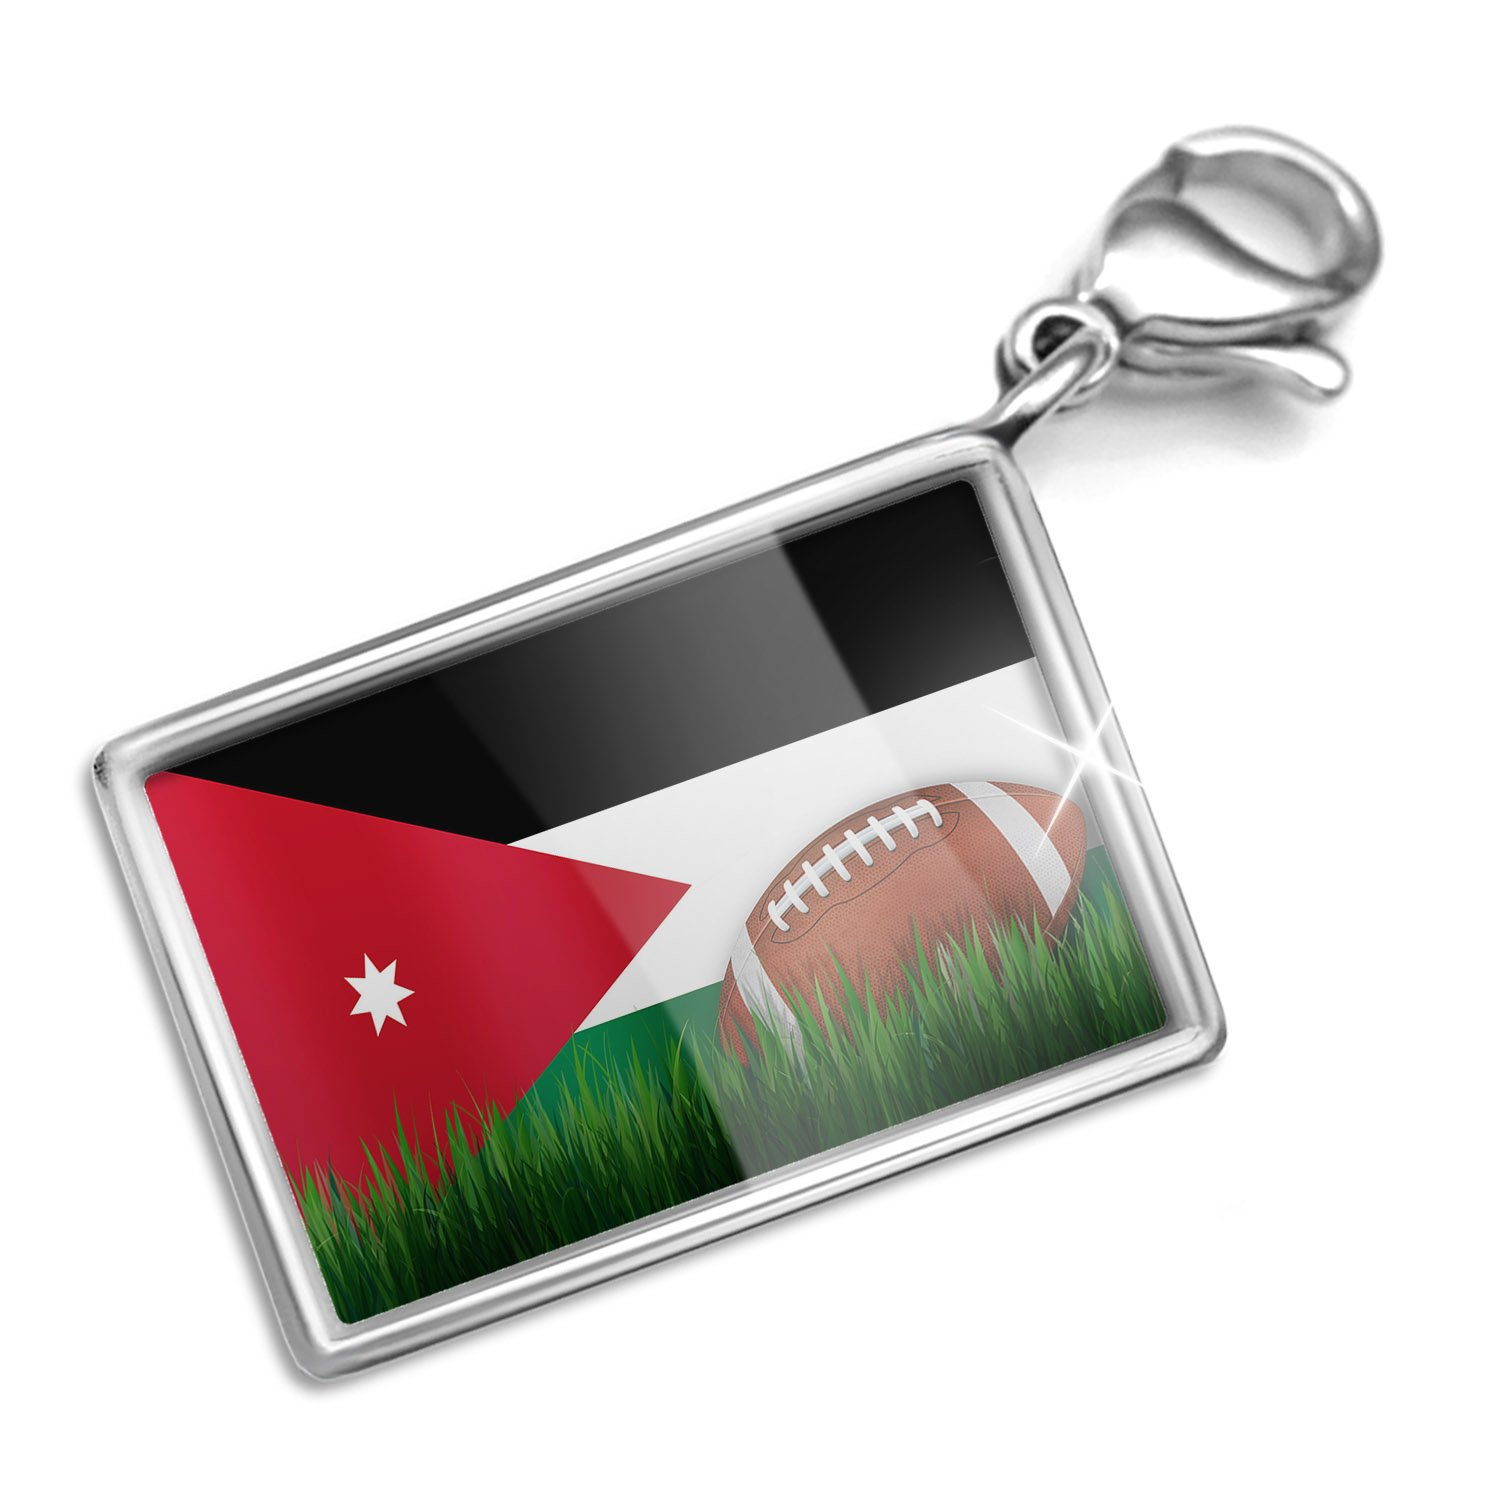 Clip on Charm & Bracelet Set Football with Flag Jordan Lobster Clasp